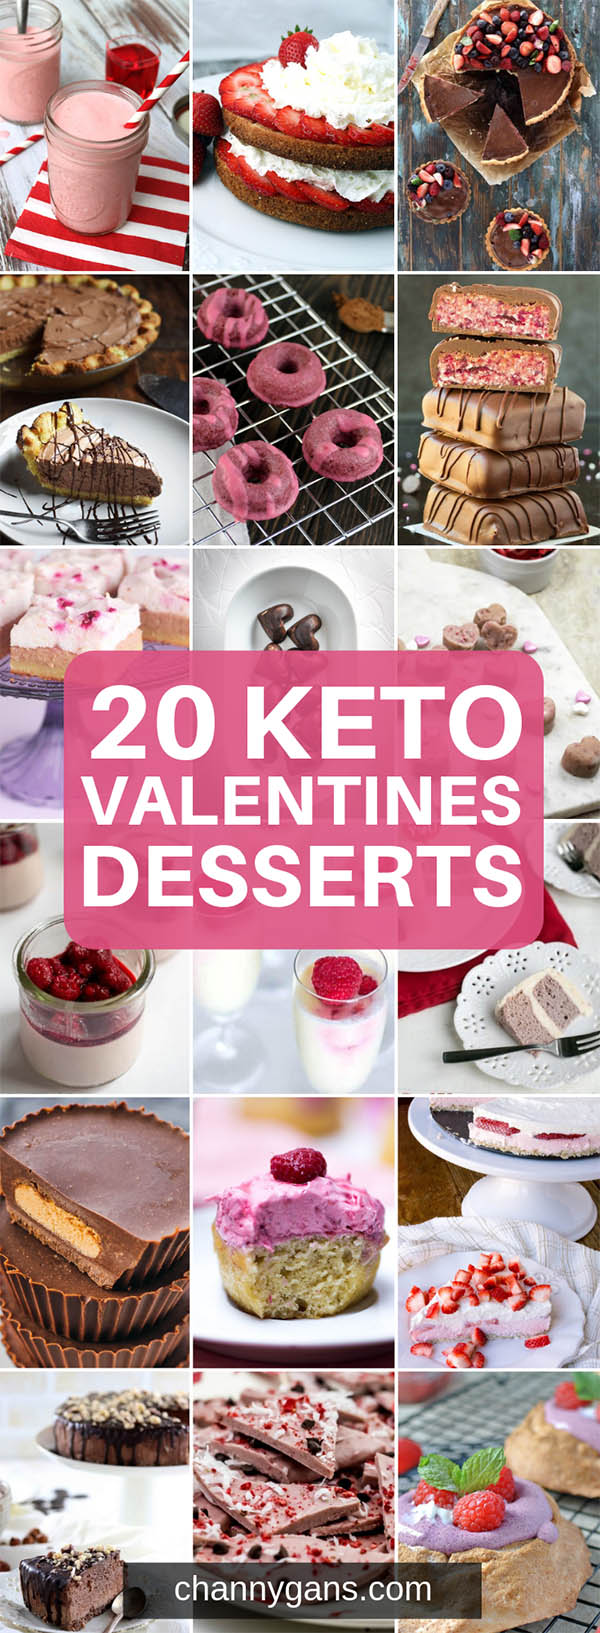 With Valentine's Day around the corner, these keto valentines dessert recipes are here to save the day! These Valentine's Day desserts are all keto friendly, so you won't feel guilty for having a treat.